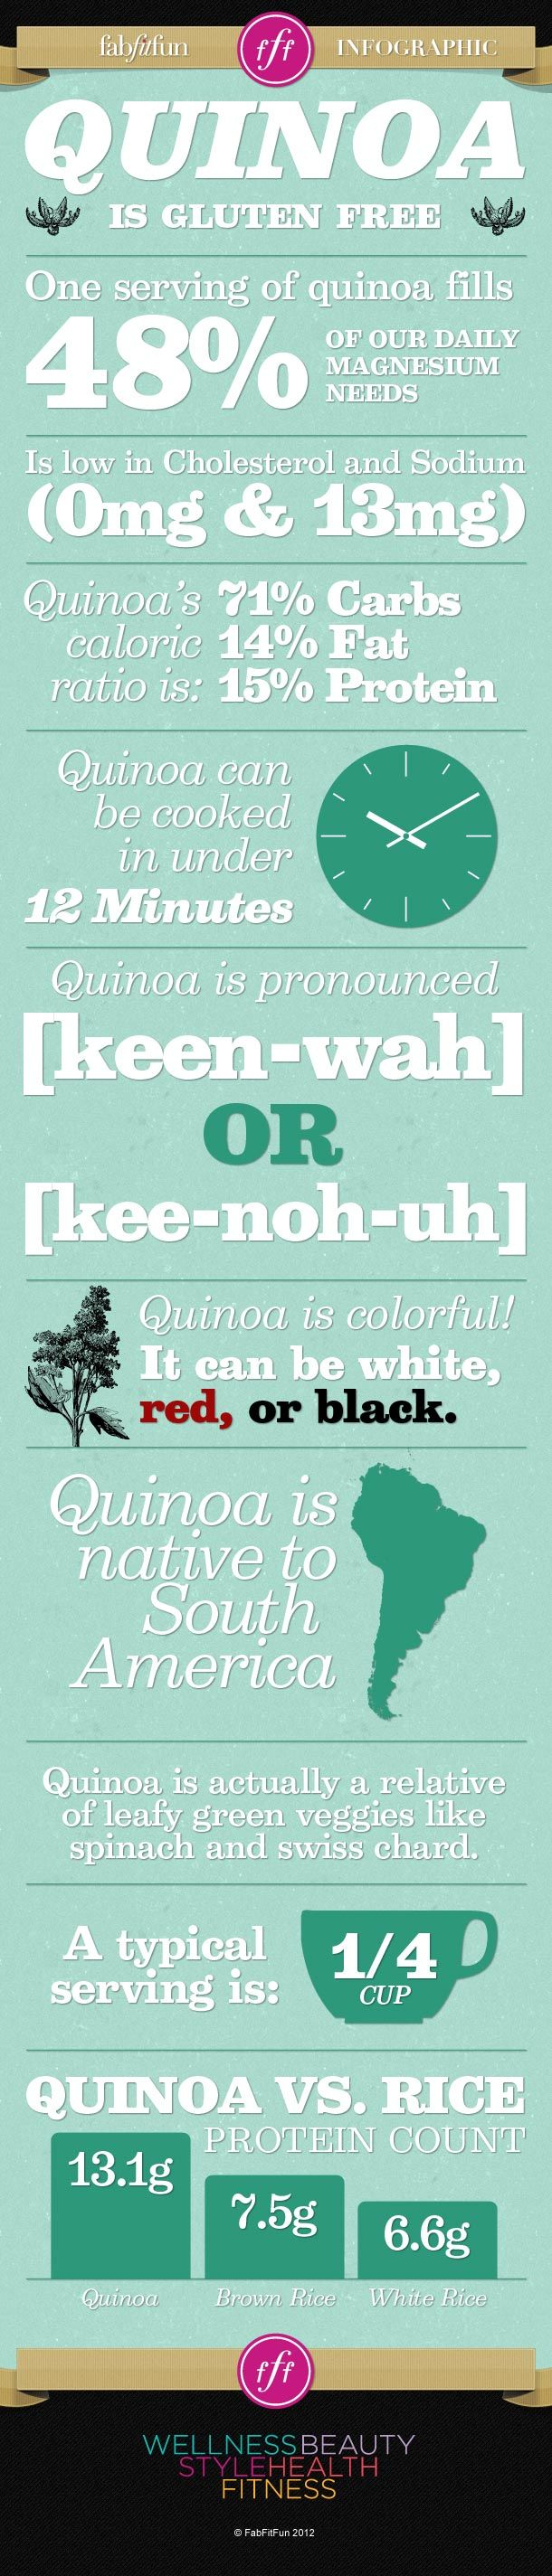 Have you tried Quinoa? I love it in place of rice or on a salad.